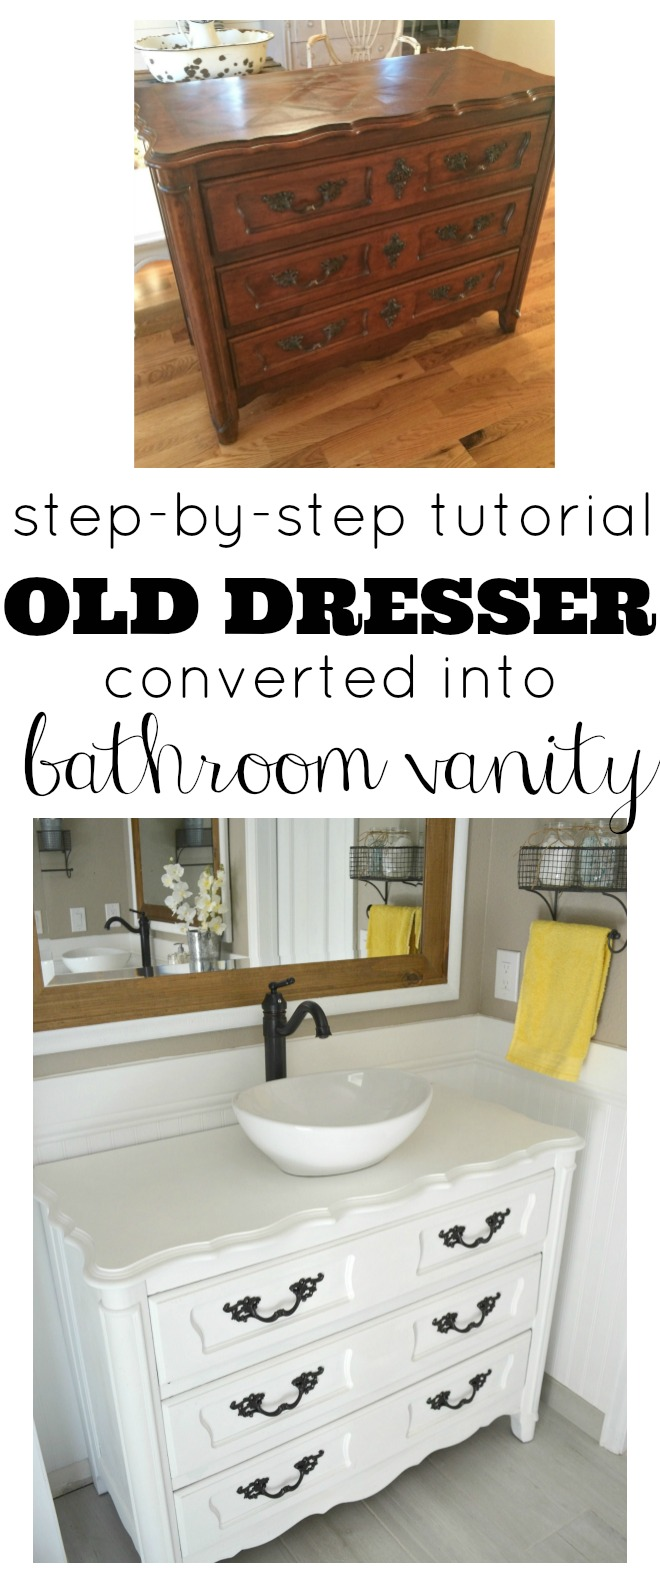 Step By Tutorial For Turning An Old Dresser Into A Bathroom Vanity Great DIY